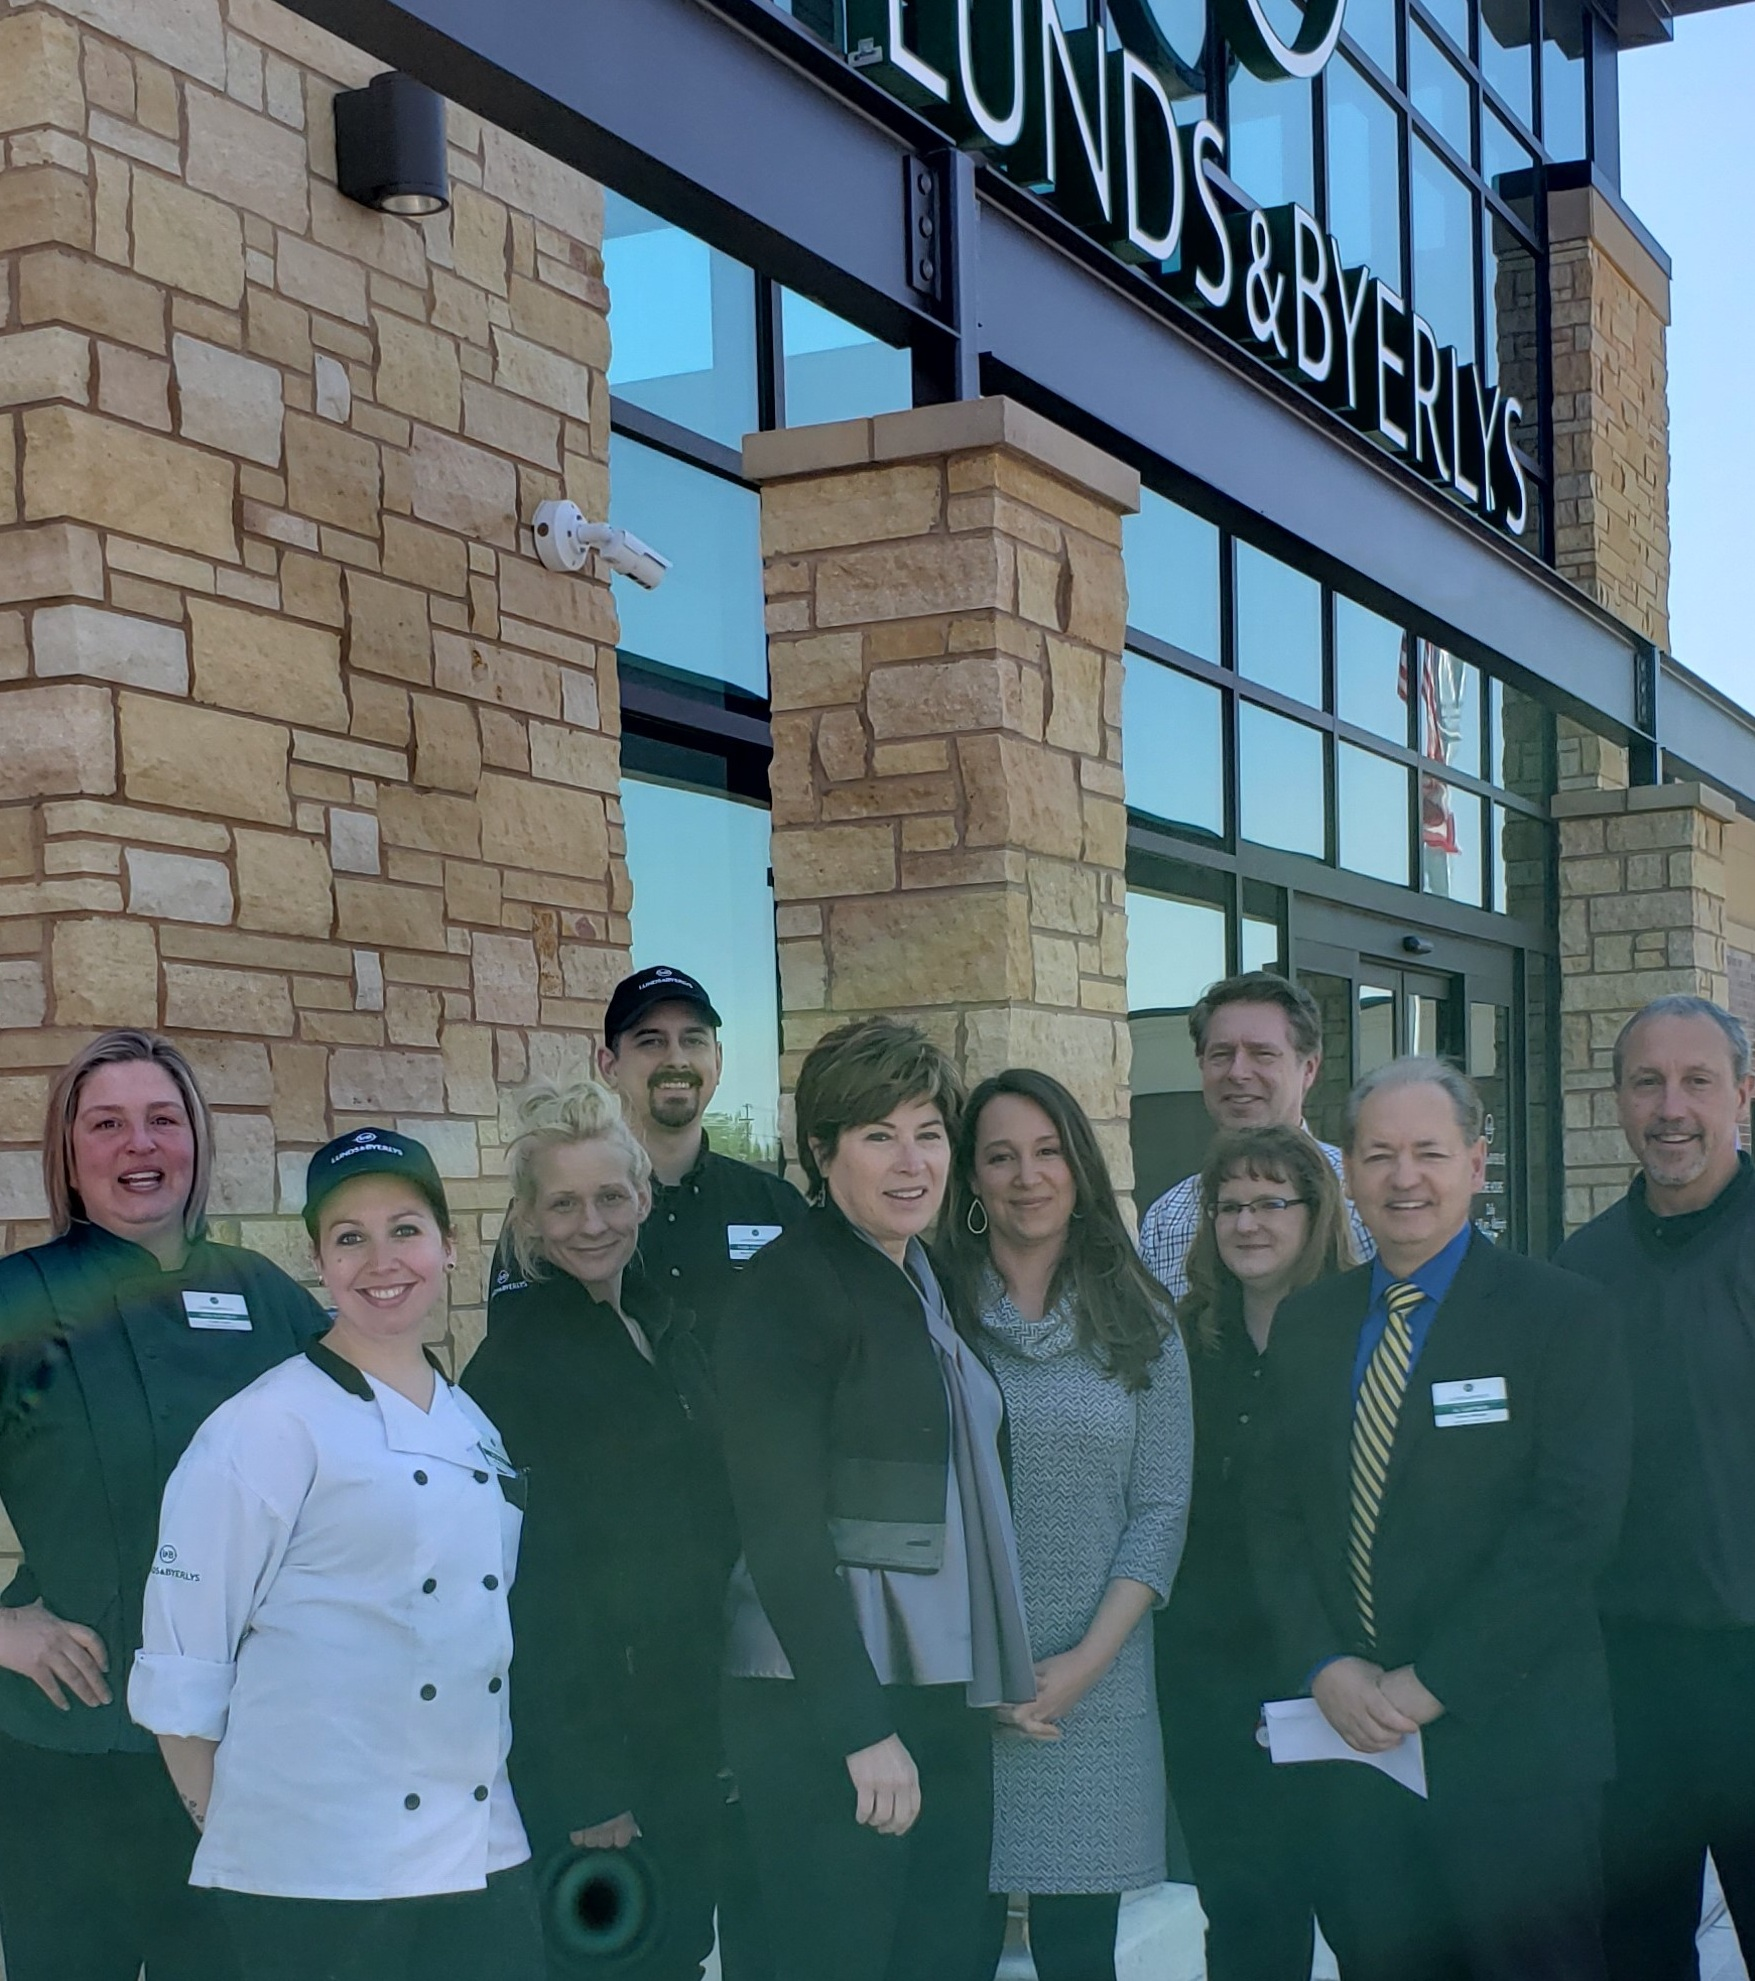 Russell+T.+Lund+Charitable+Trust+%28Lund%27s-Byerlys%29+Photo+5-14-19+store+manager+Al+Gartner.jpg